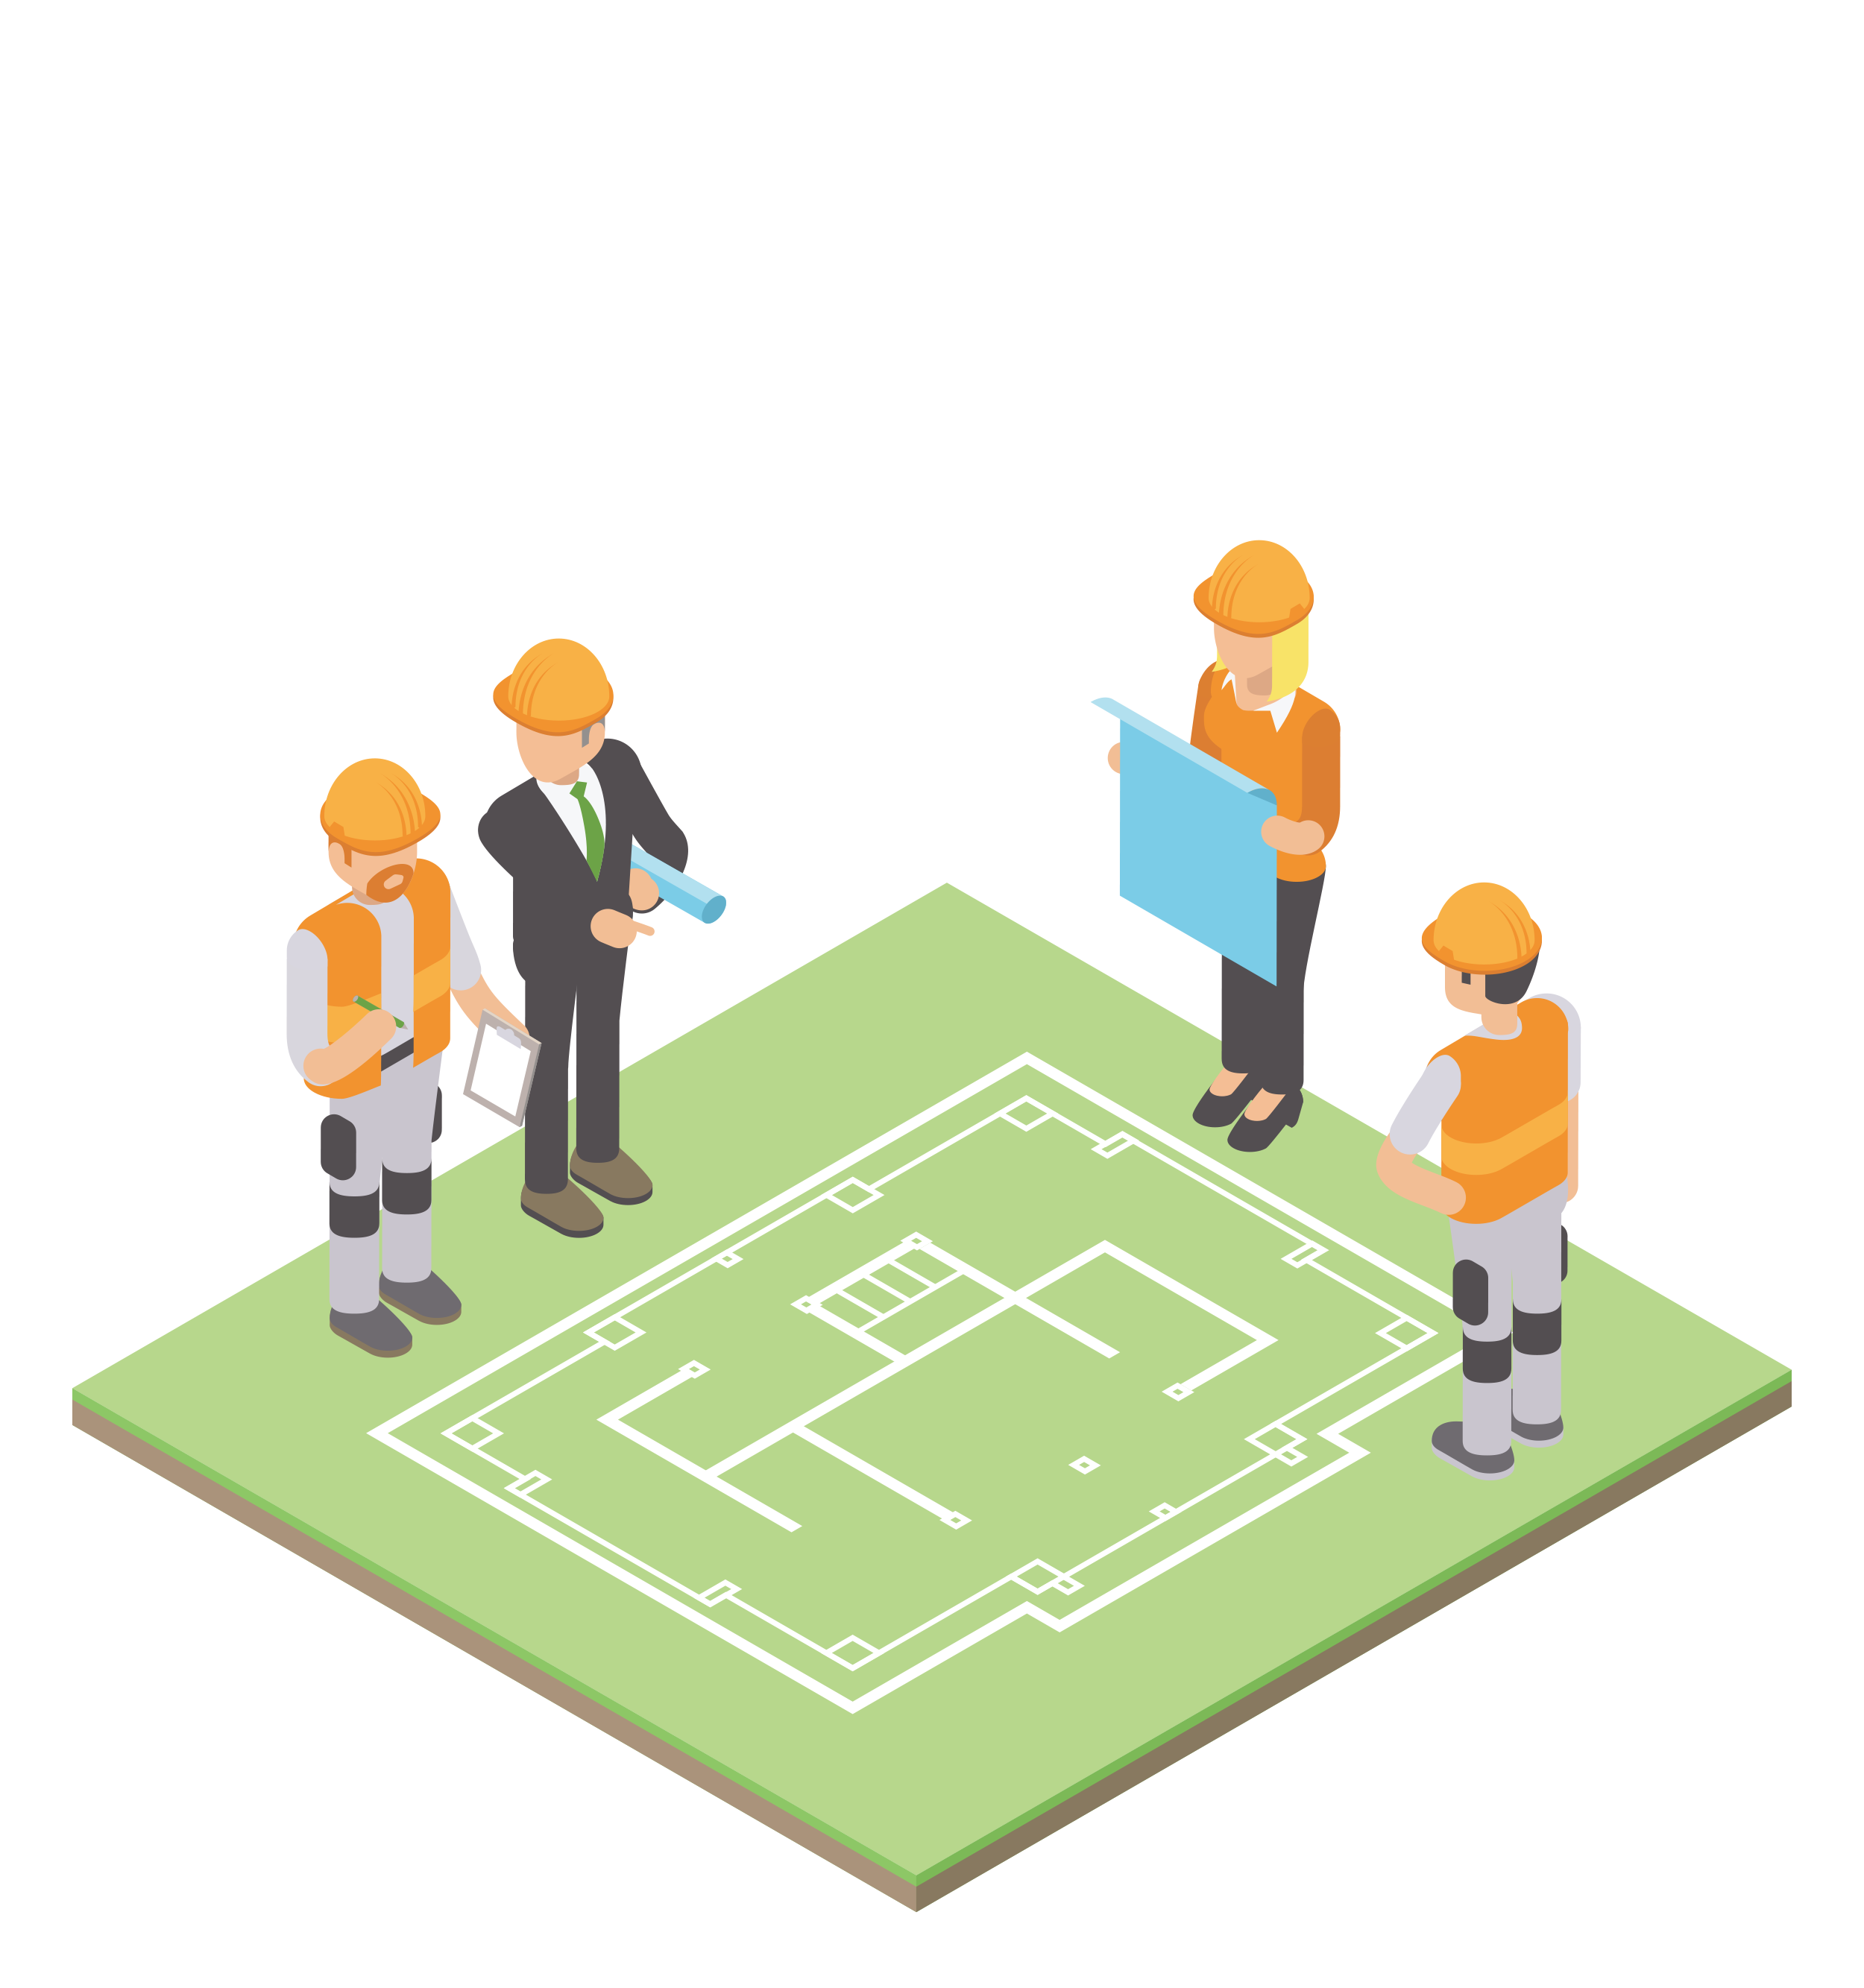 illustration_andre_levy_zhion_vector_isometric_perspective_infographic_construction_building_team_process_1.png